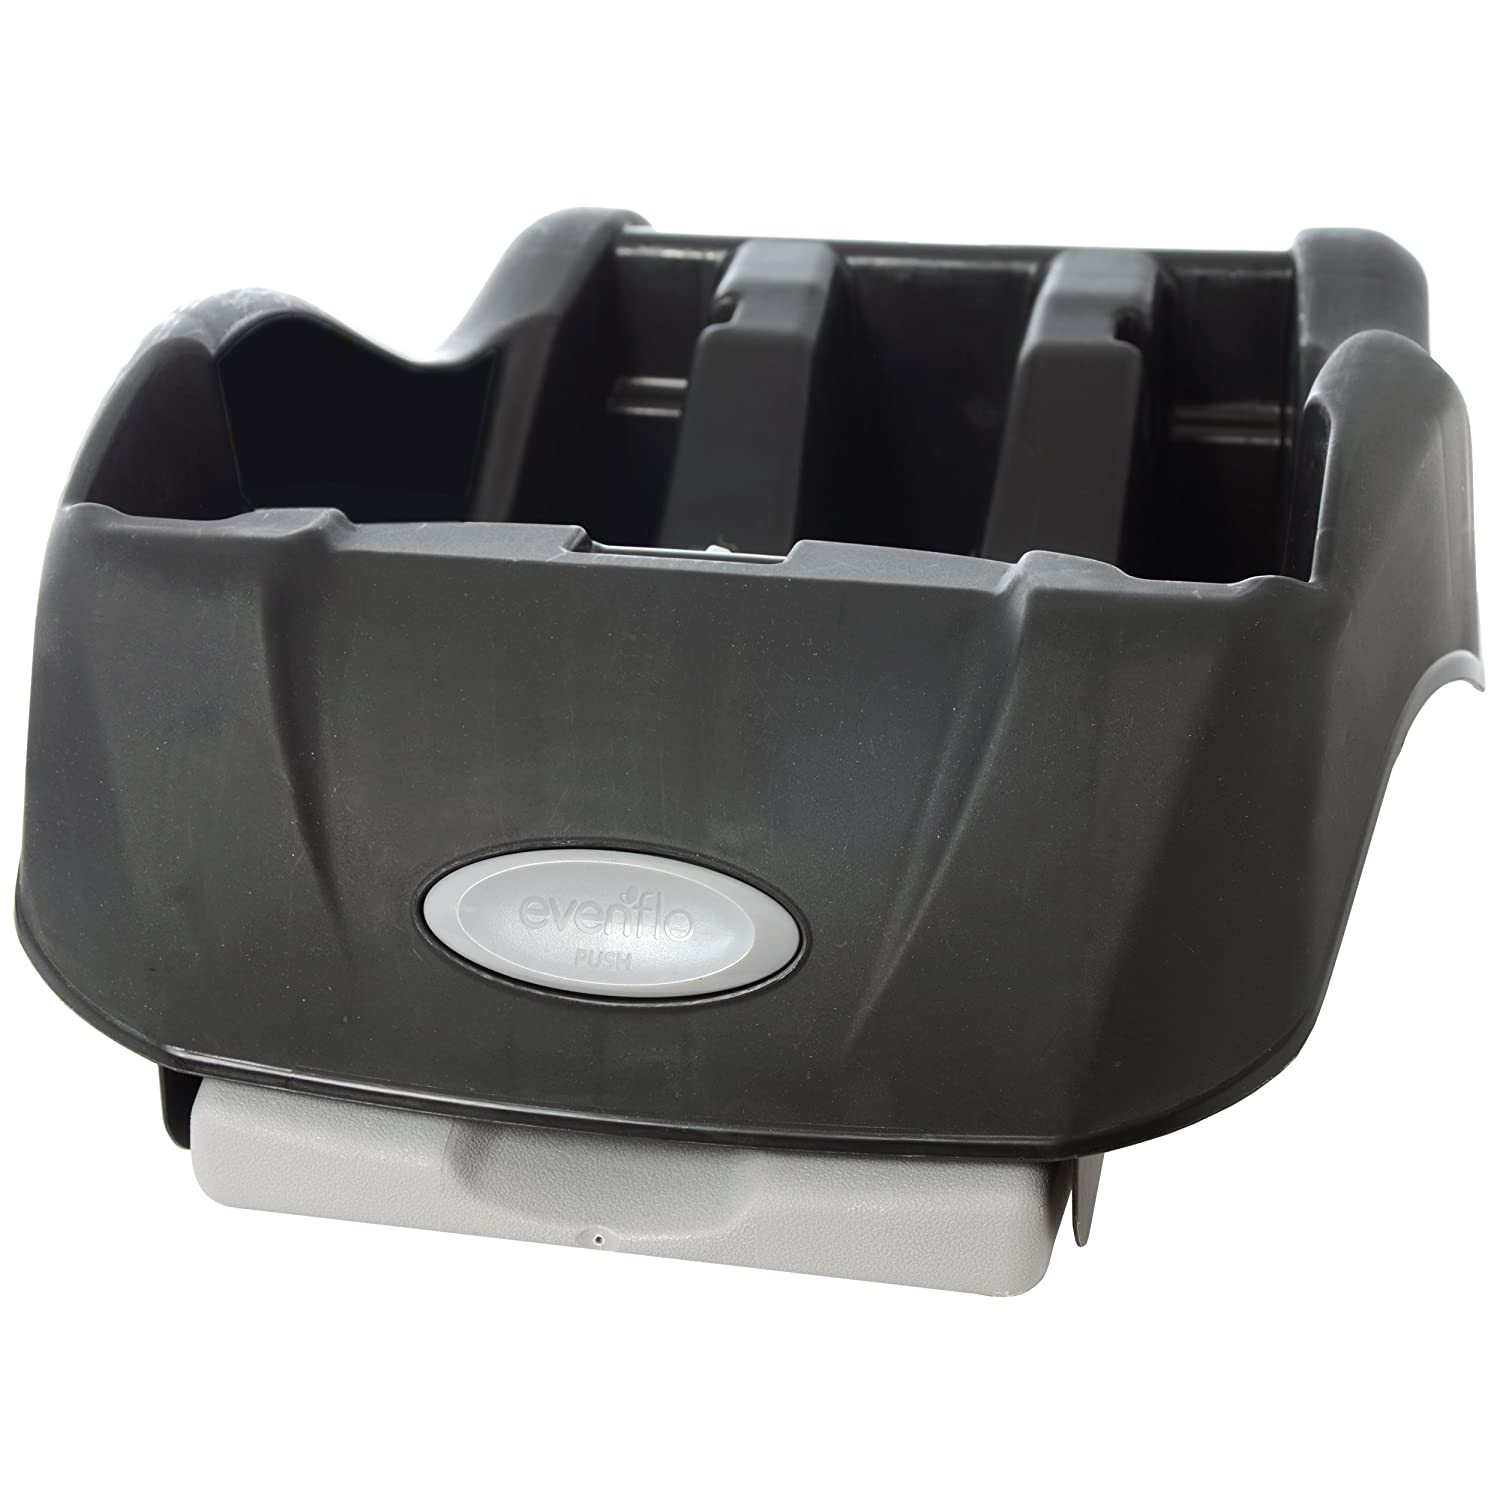 Evenflo Embrace Infant Car Seat Base, Black 32121400